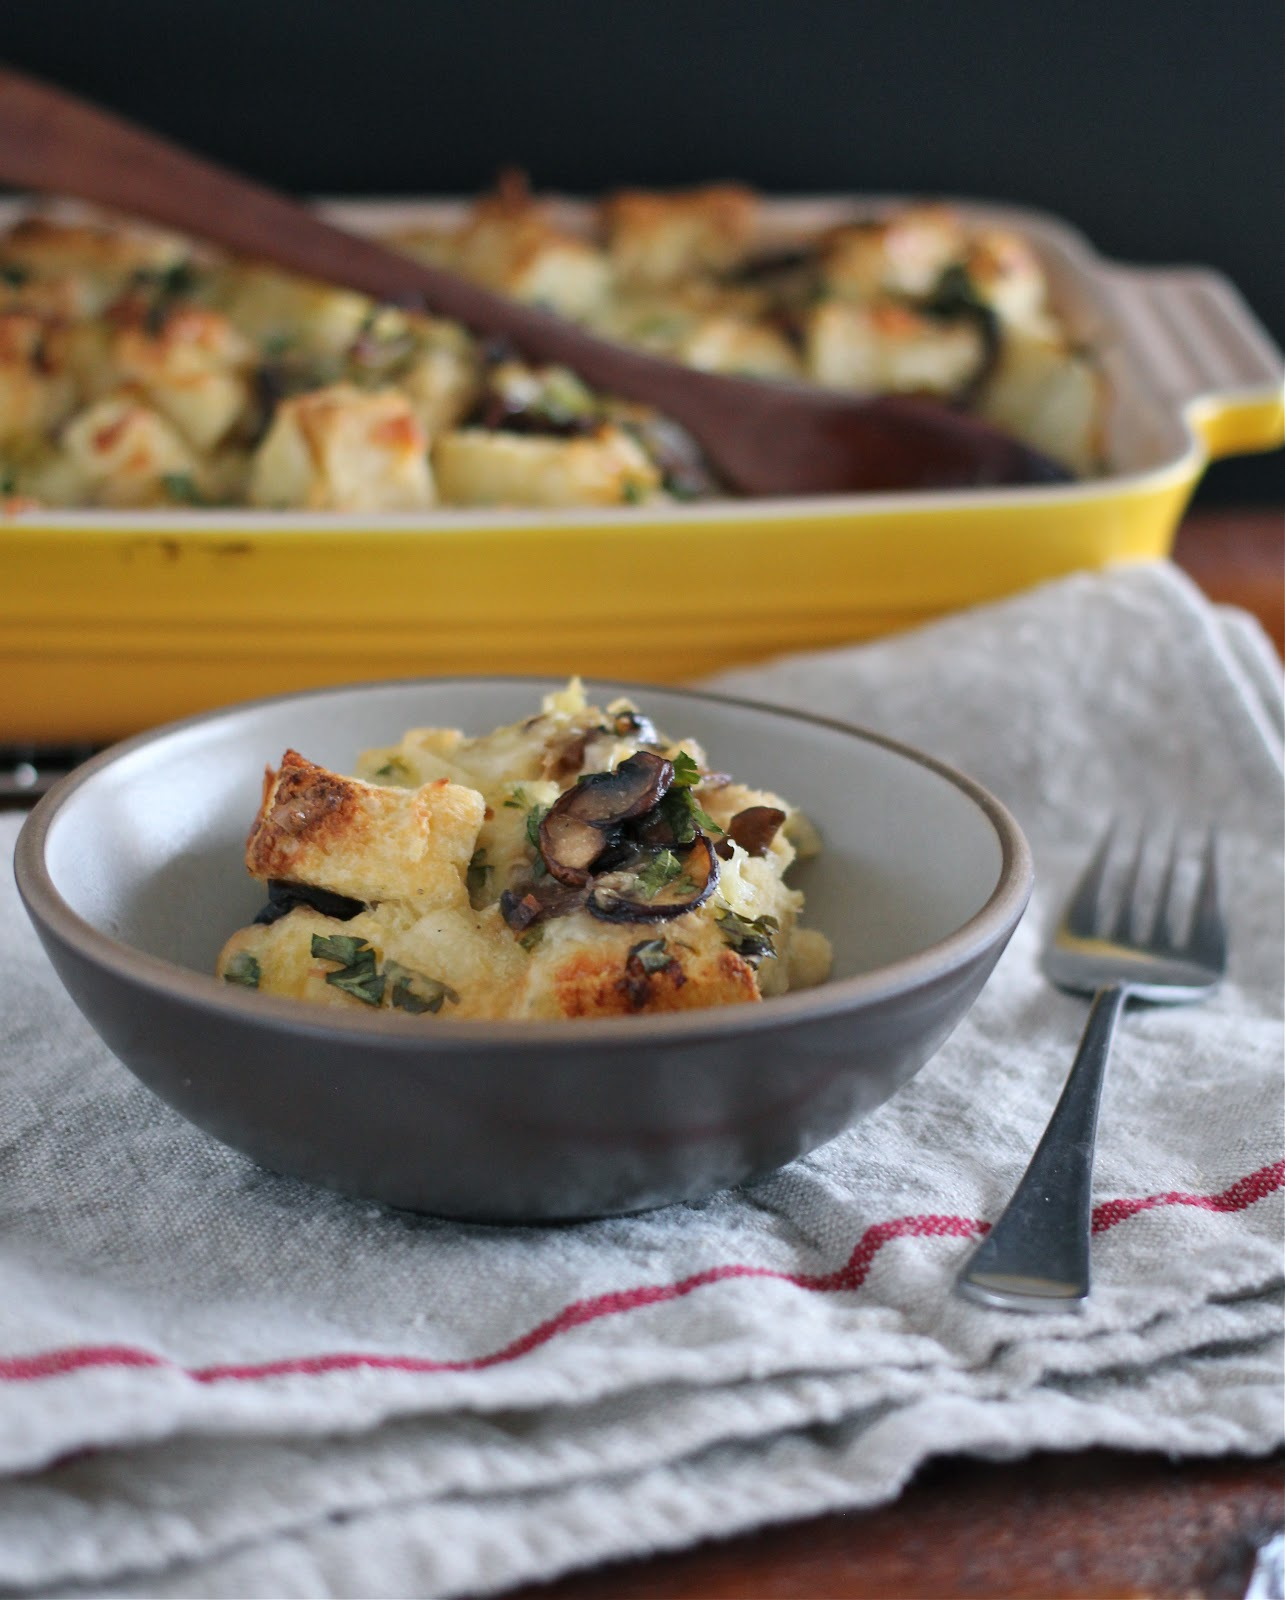 Arctic Garden Studio: Leek and Mushroom Bread Pudding